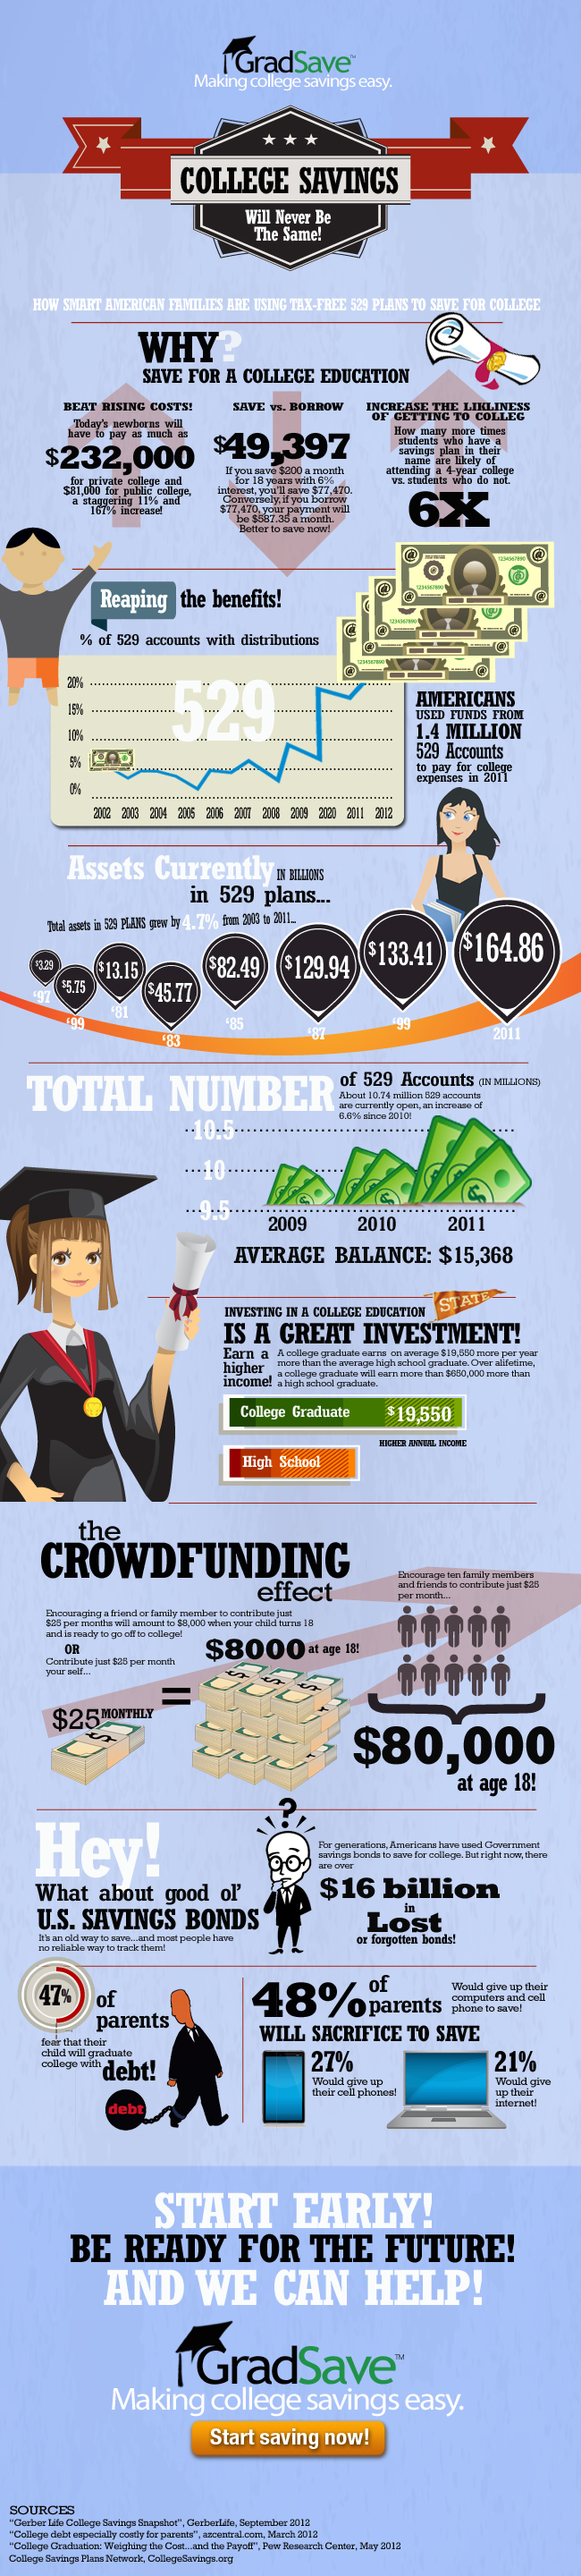 Should You Use 529 Plans To Save For College